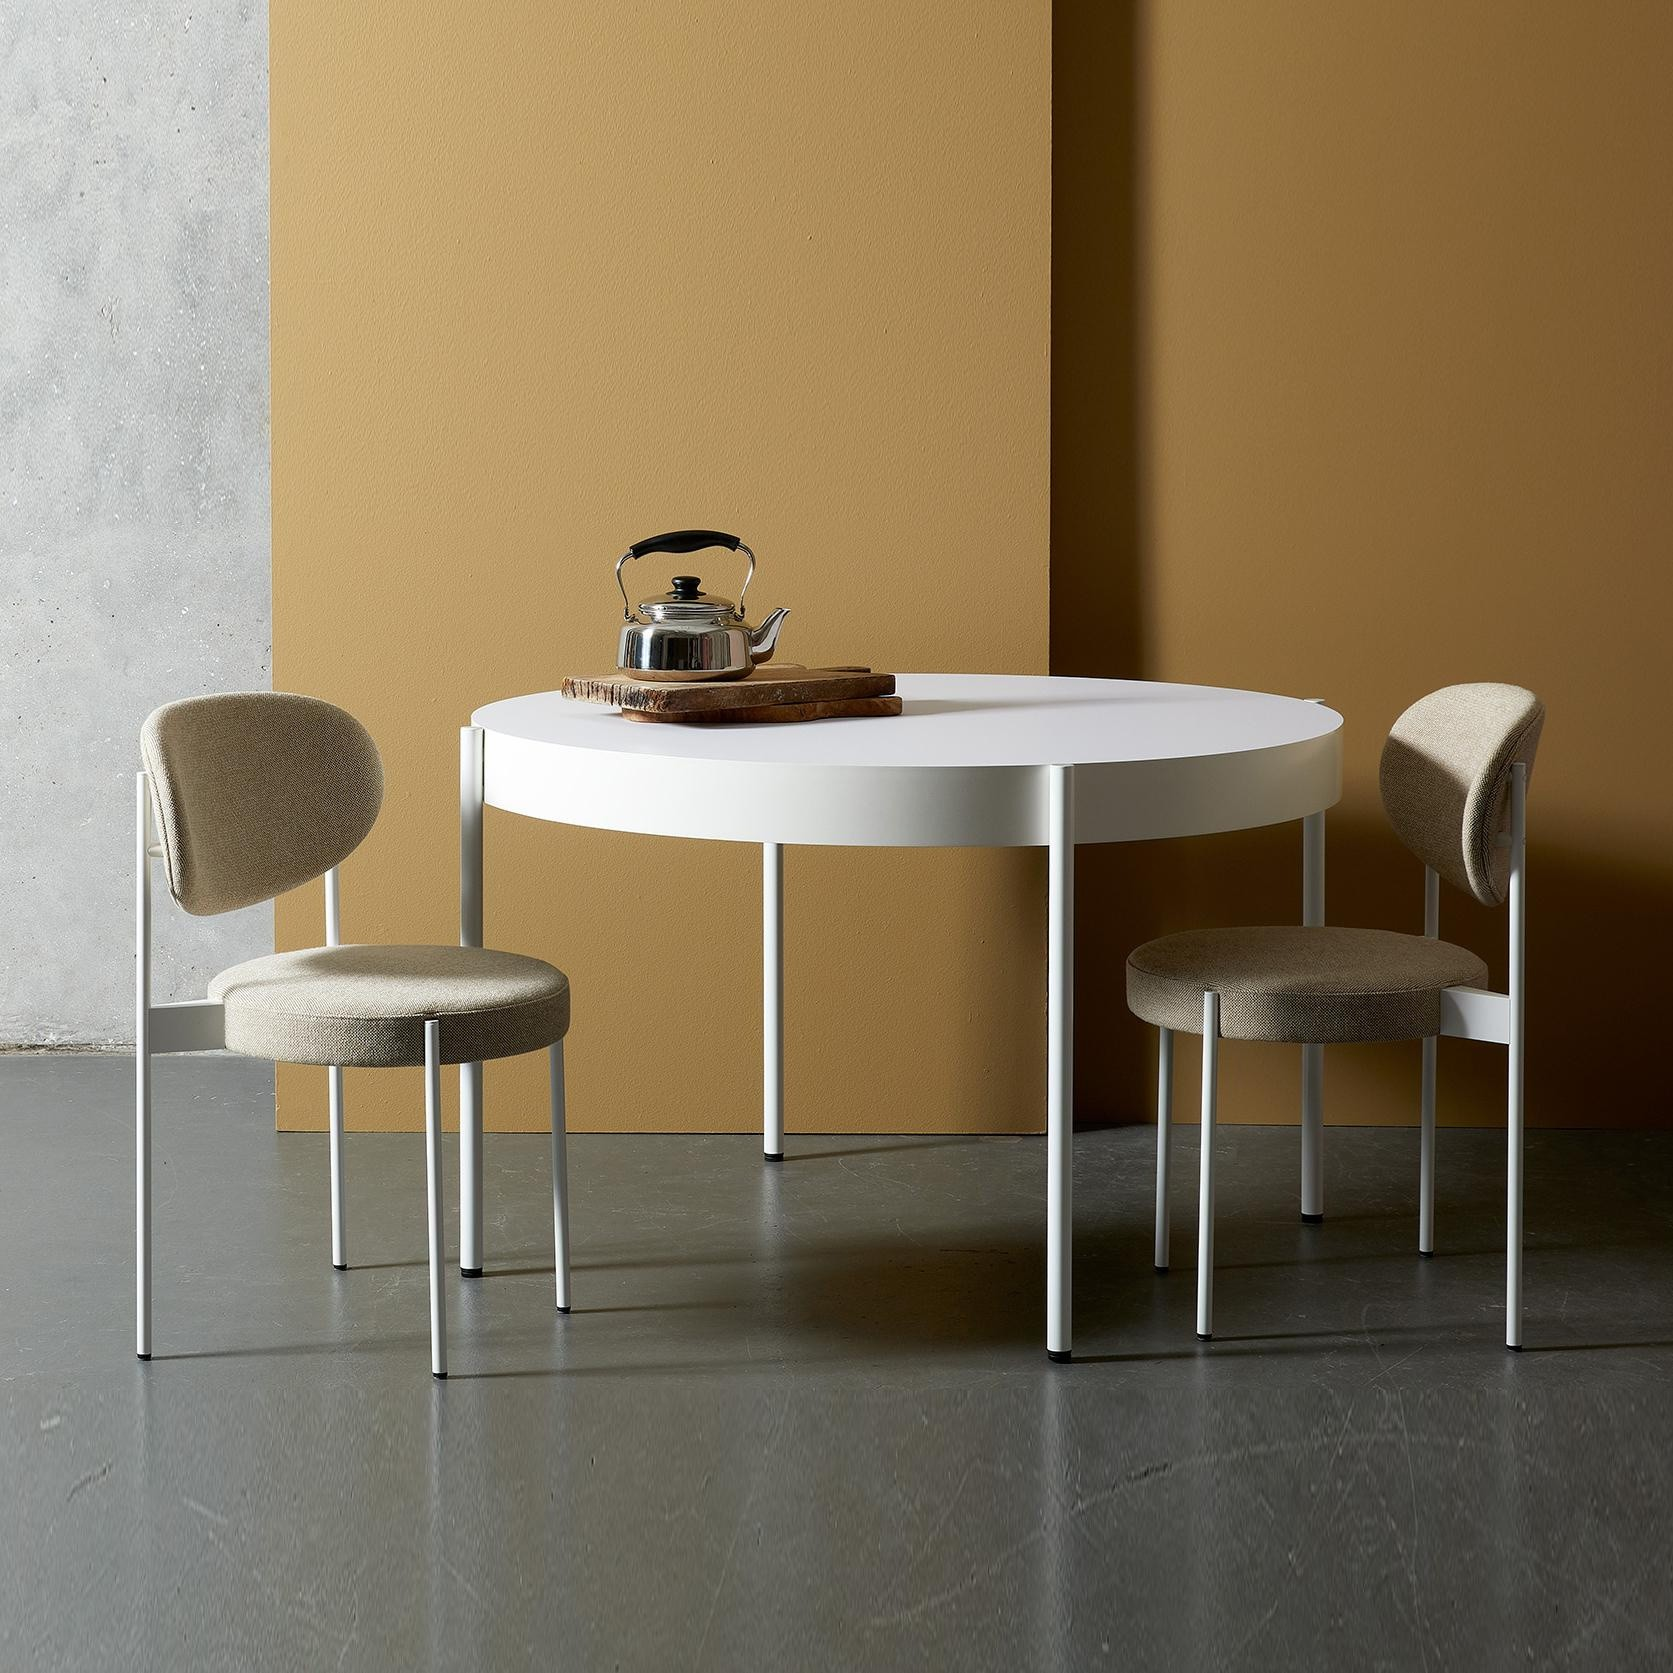 Verpan Series 430 Table Ambientedirect